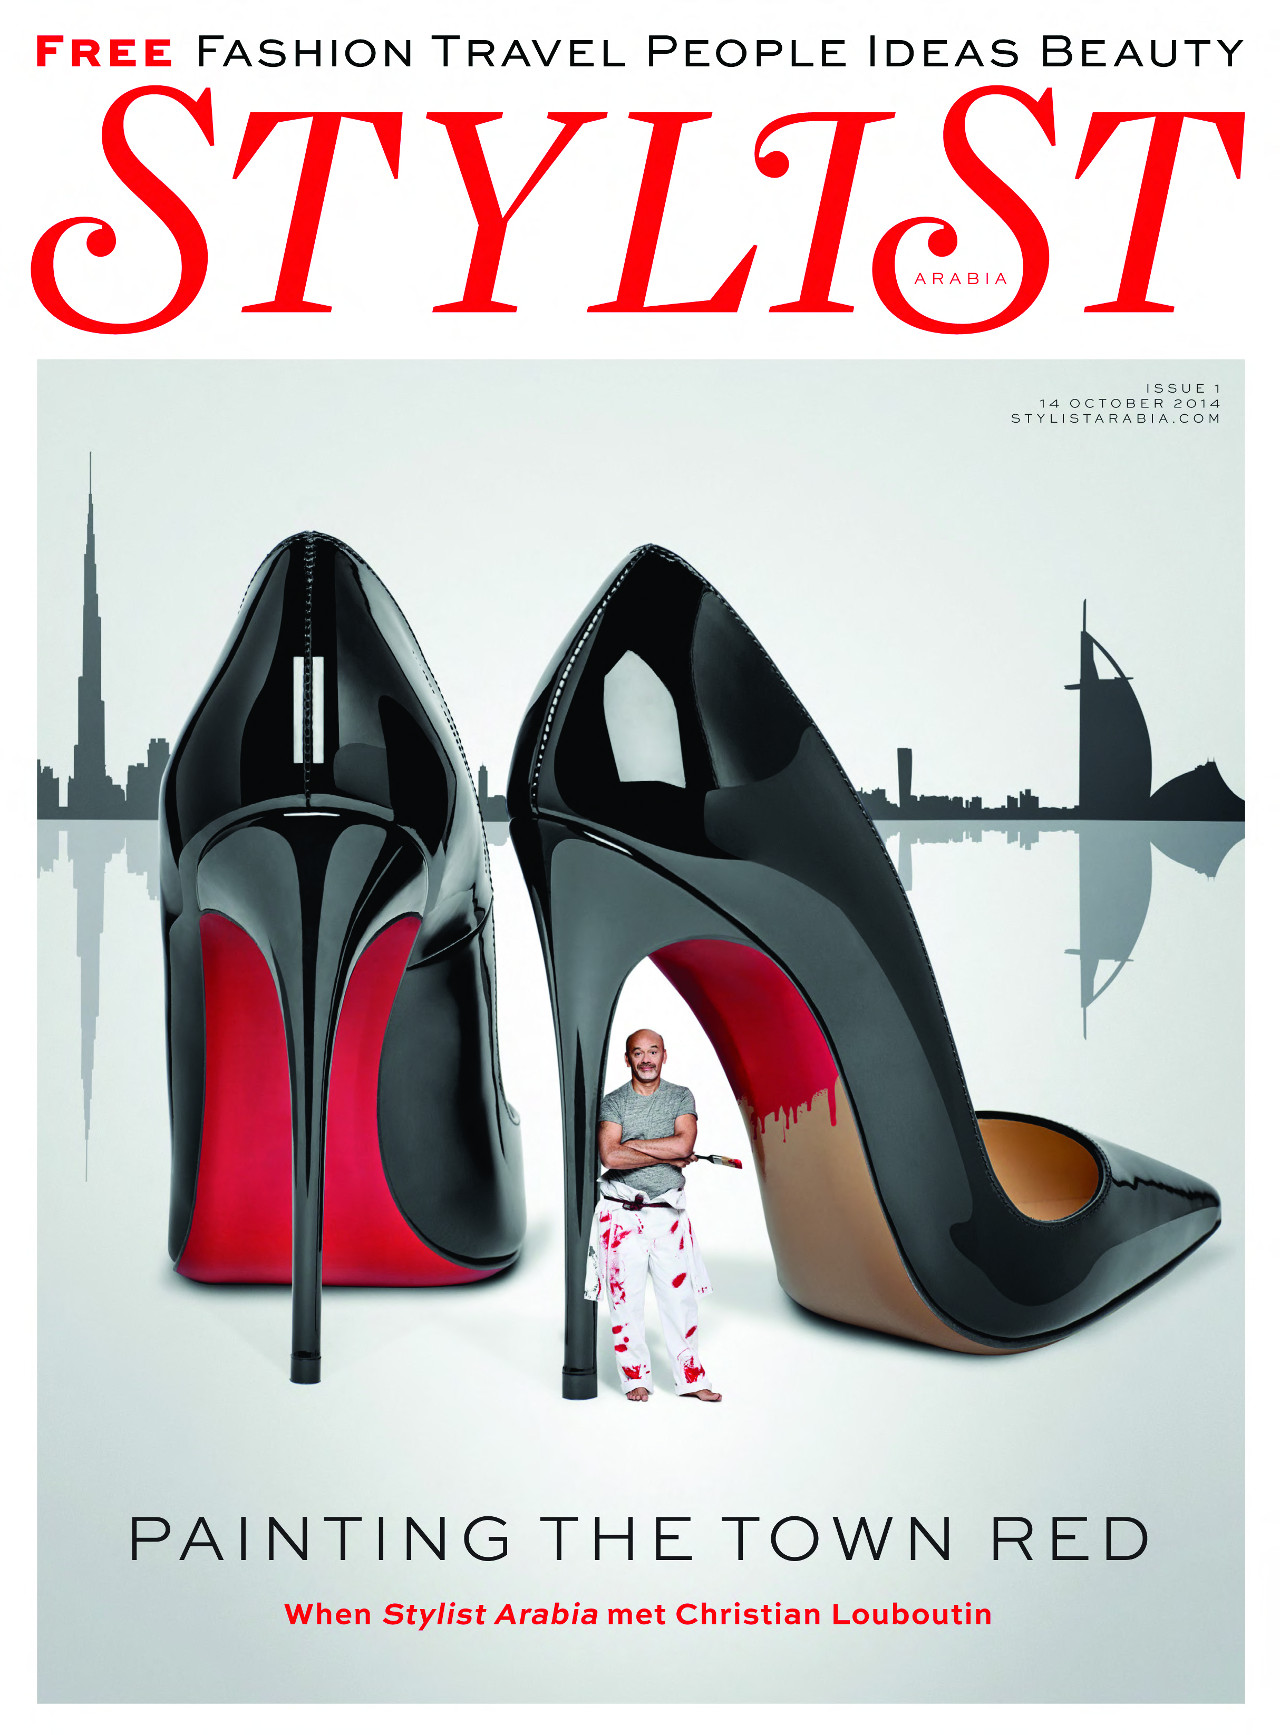 ab725f2ec32 News - Christian Louboutin Online Boutique - Stylist Arabia Launches with Christian  Louboutin